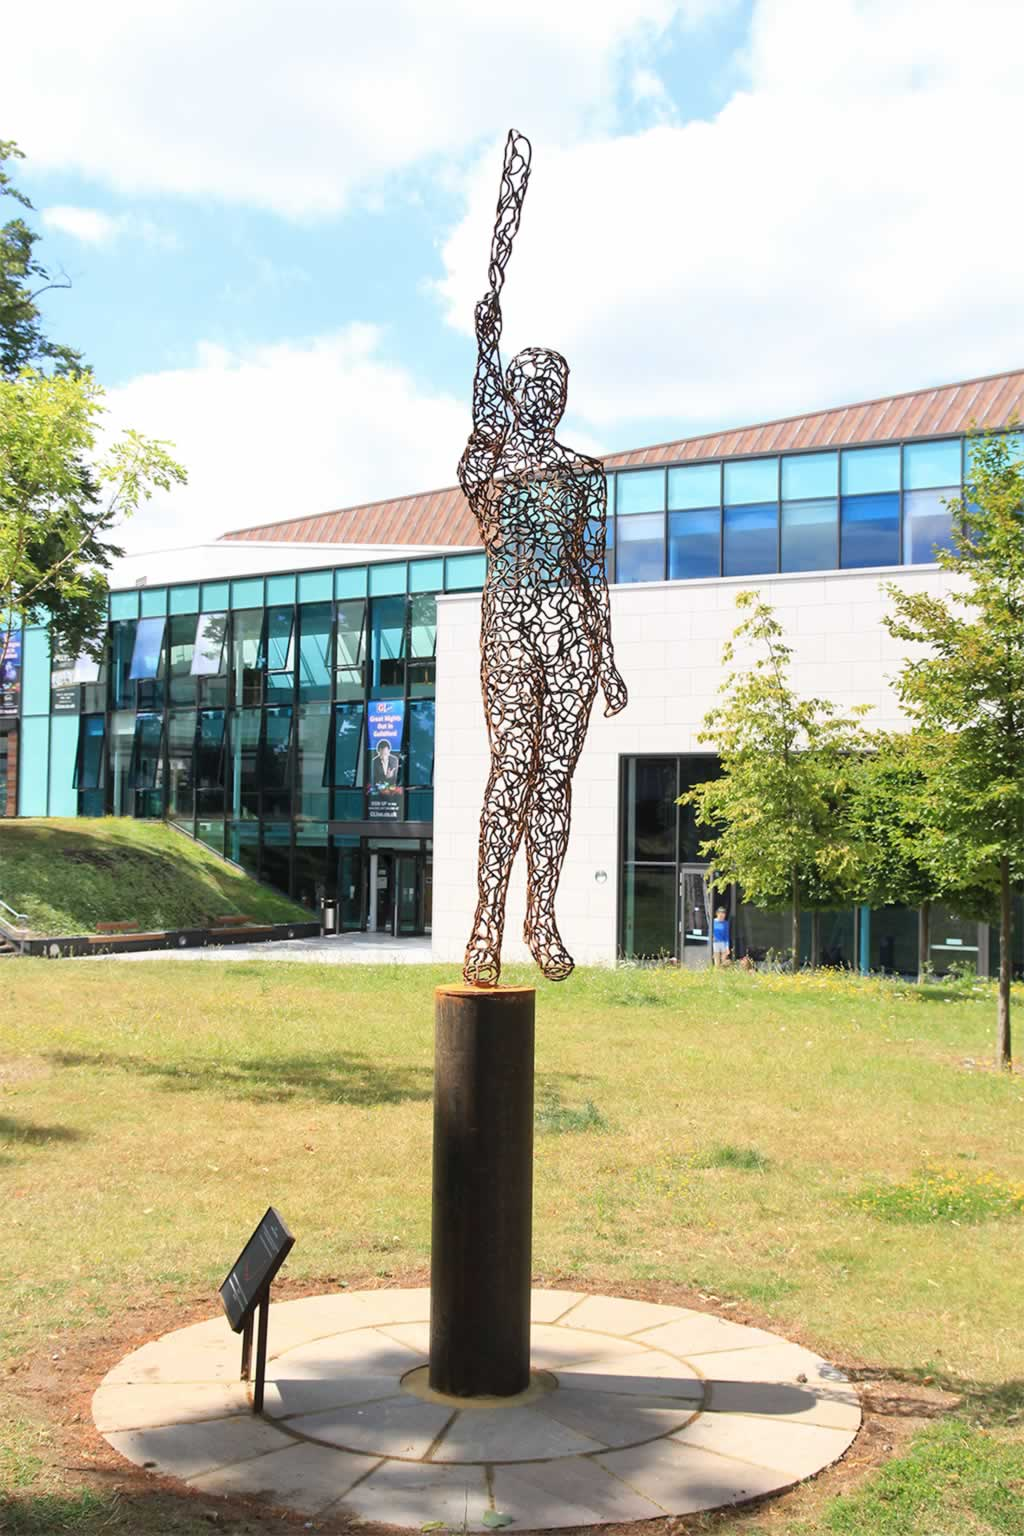 Juno at G-Live, Guildford (abstract figurative sculpture) by sculptor Ian Campbell-Briggs